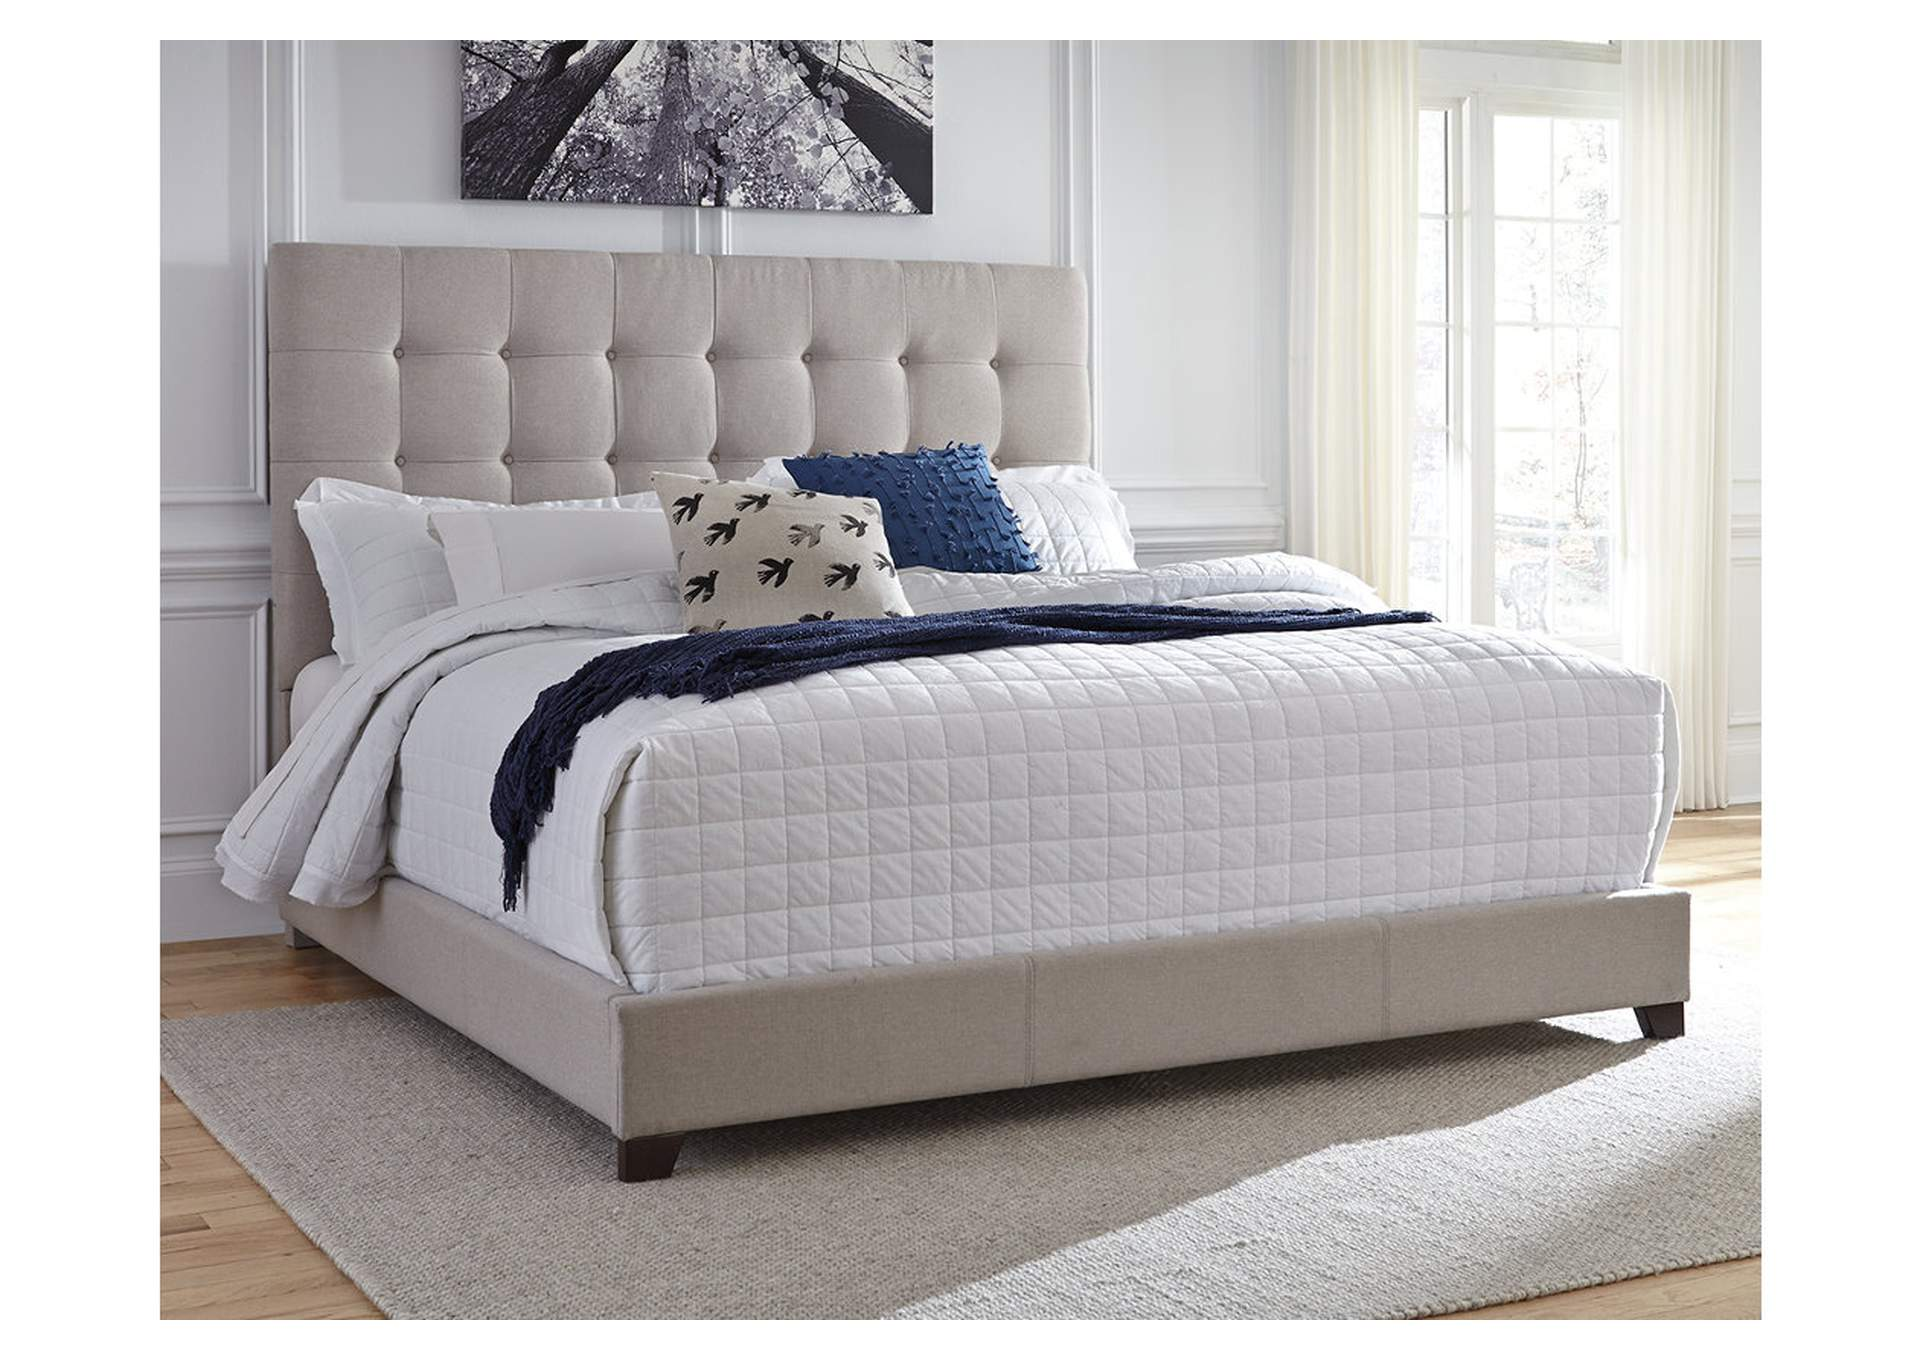 Dolante Beige Queen Upholstered Bed,Direct To Consumer Express